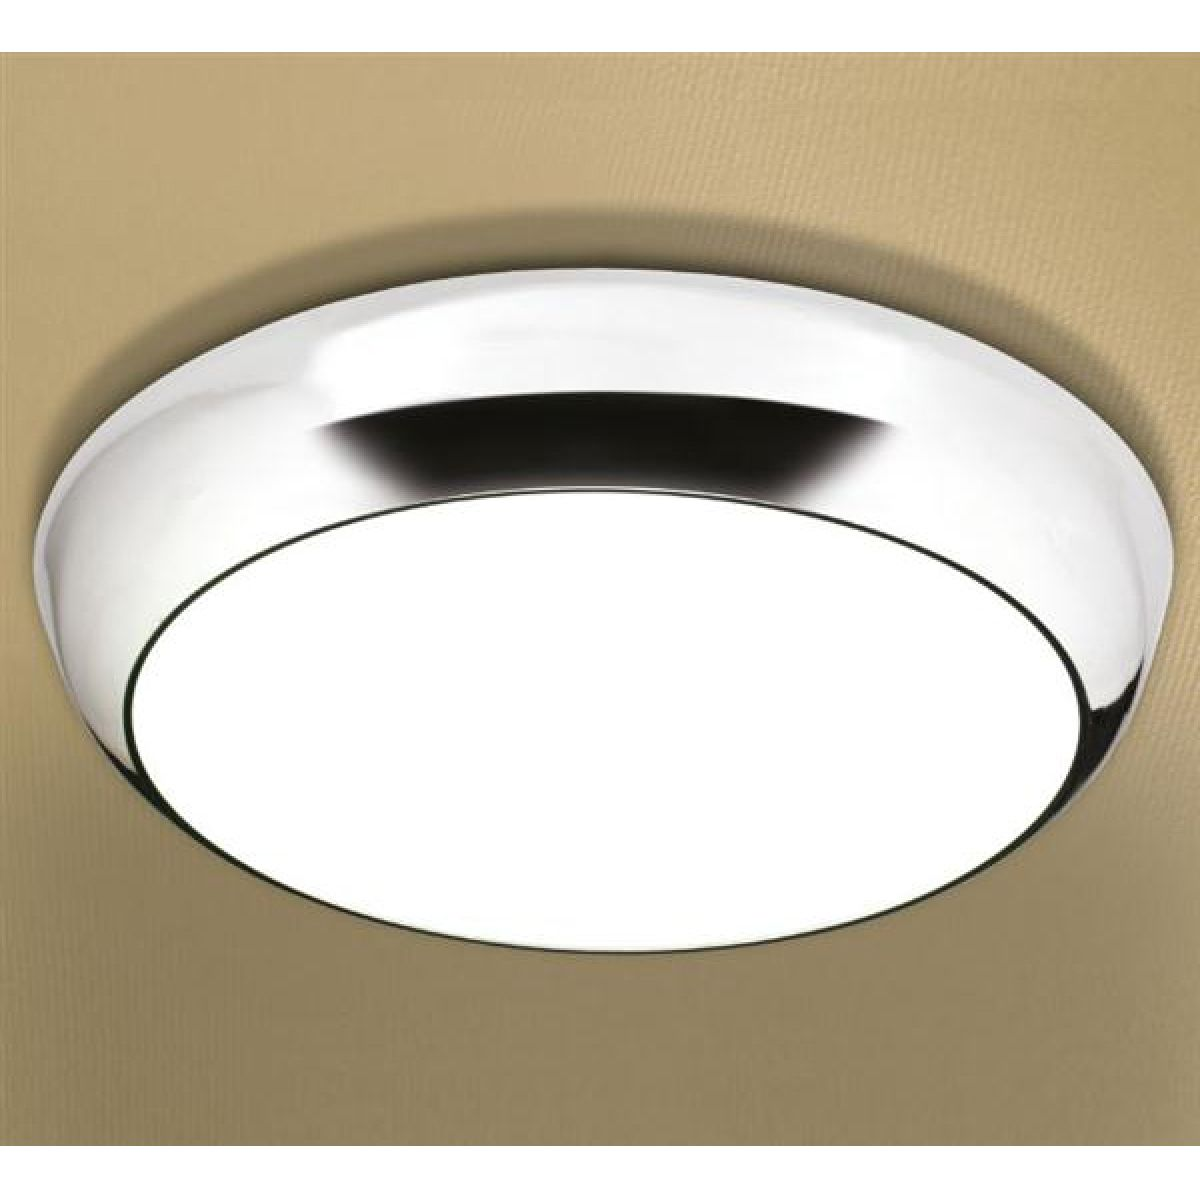 HiB Kinetic Round LED Ceiling Light